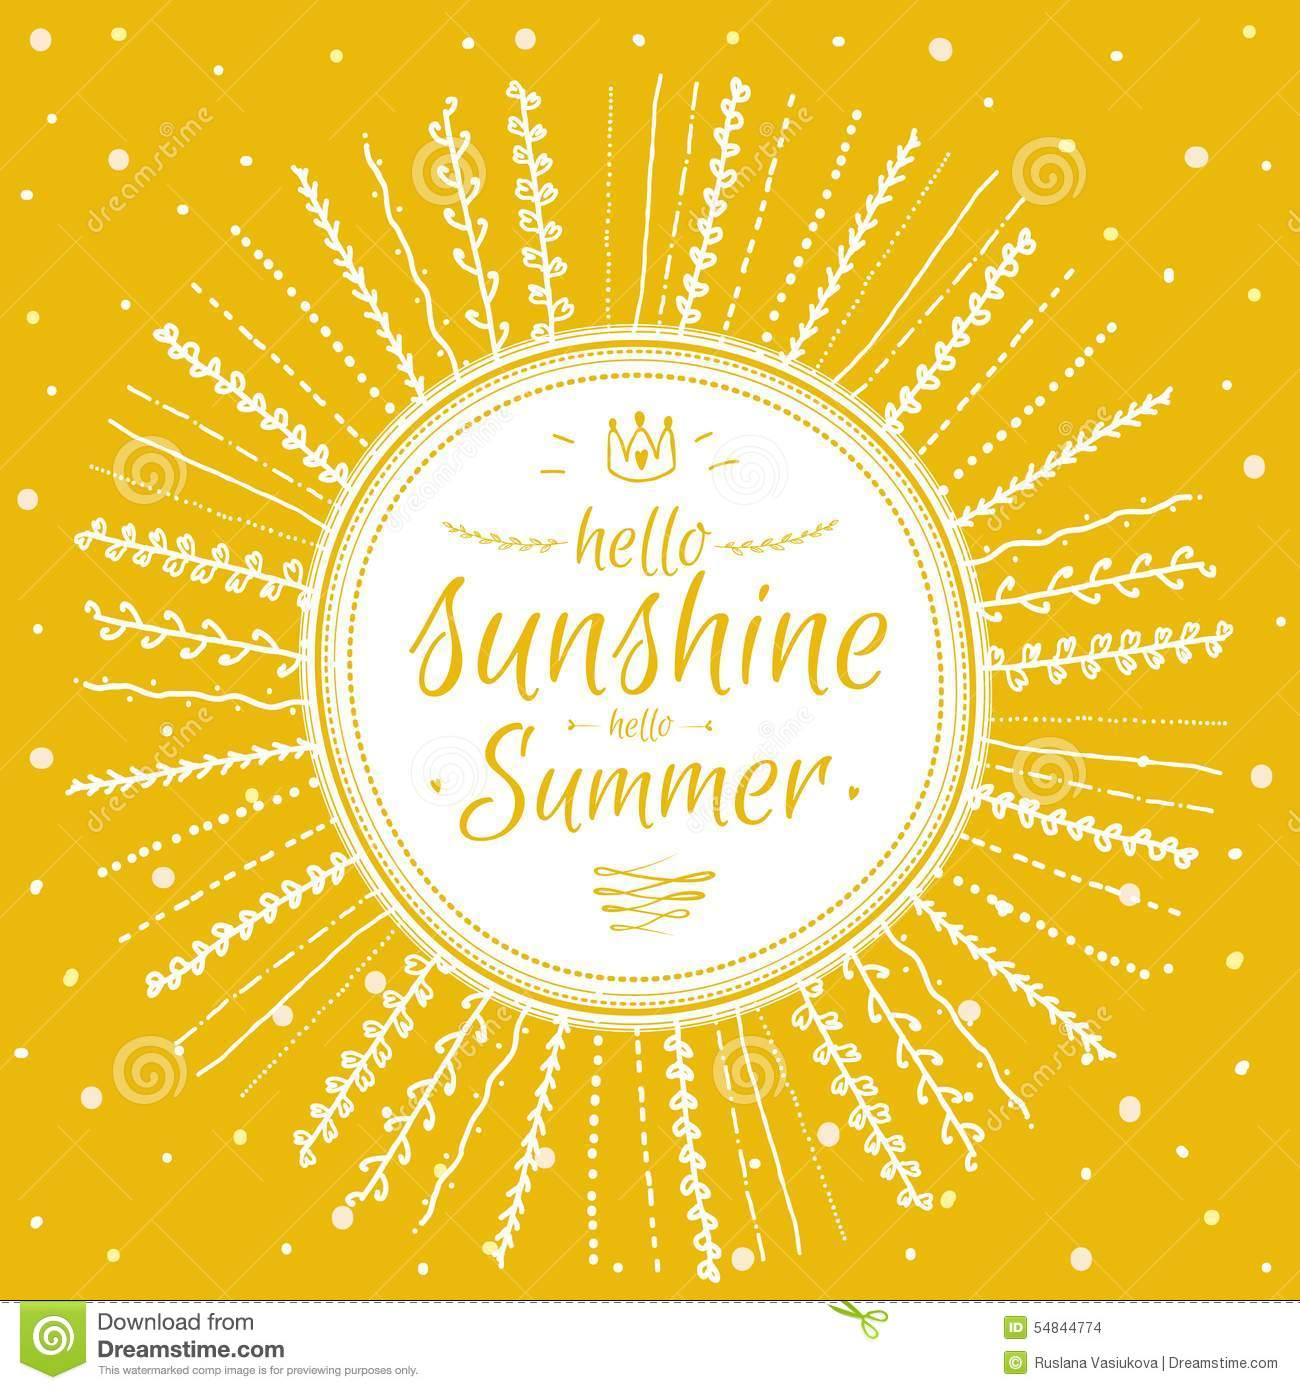 Summer Card With Cute Sun And Motivational Stock Vector - Image: 54844774 Hello Sunshine Quotes